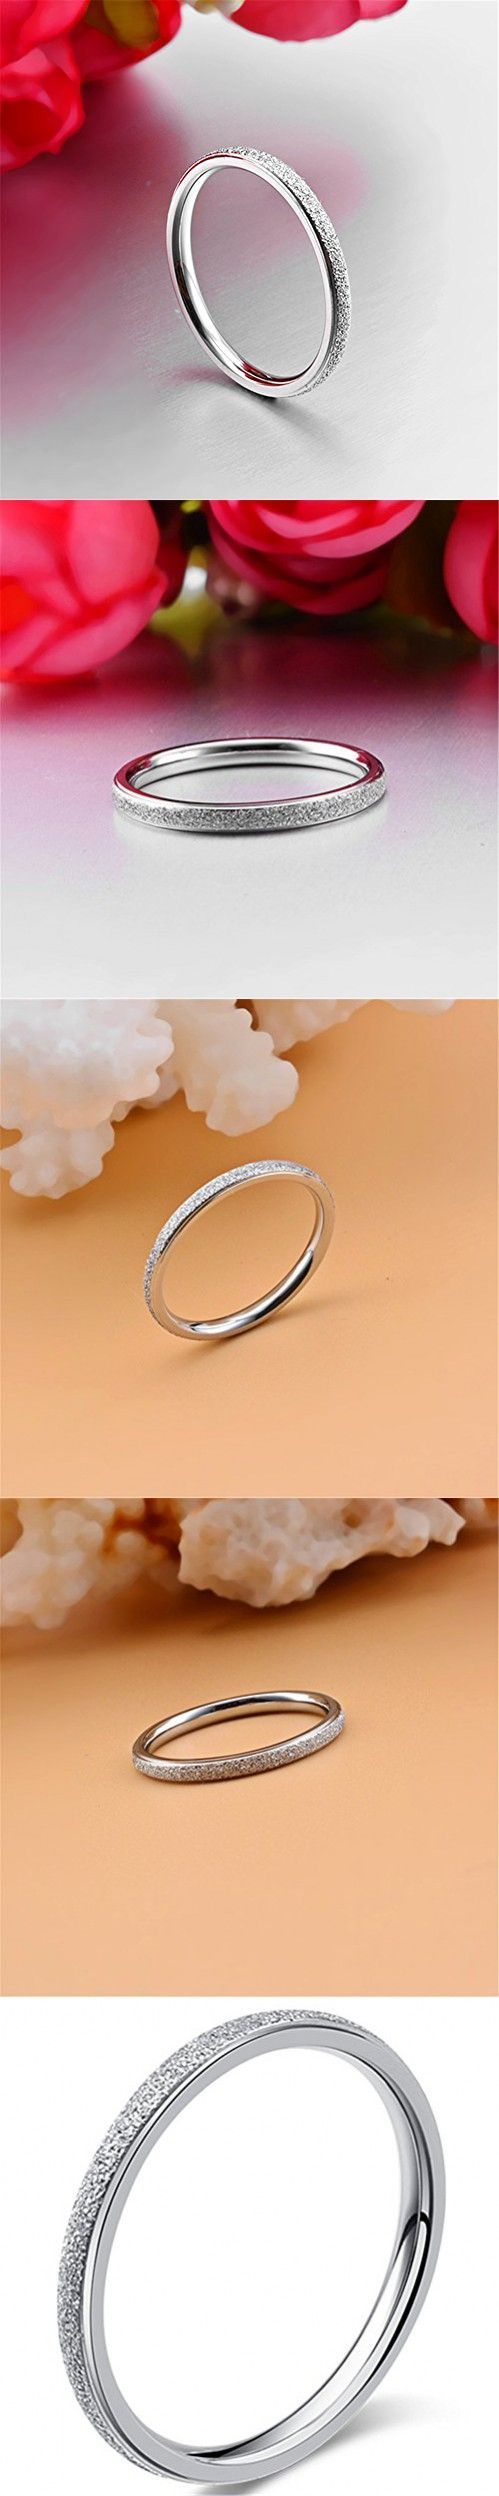 52 best Stainless Steel Engagement Rings For Women images on ...